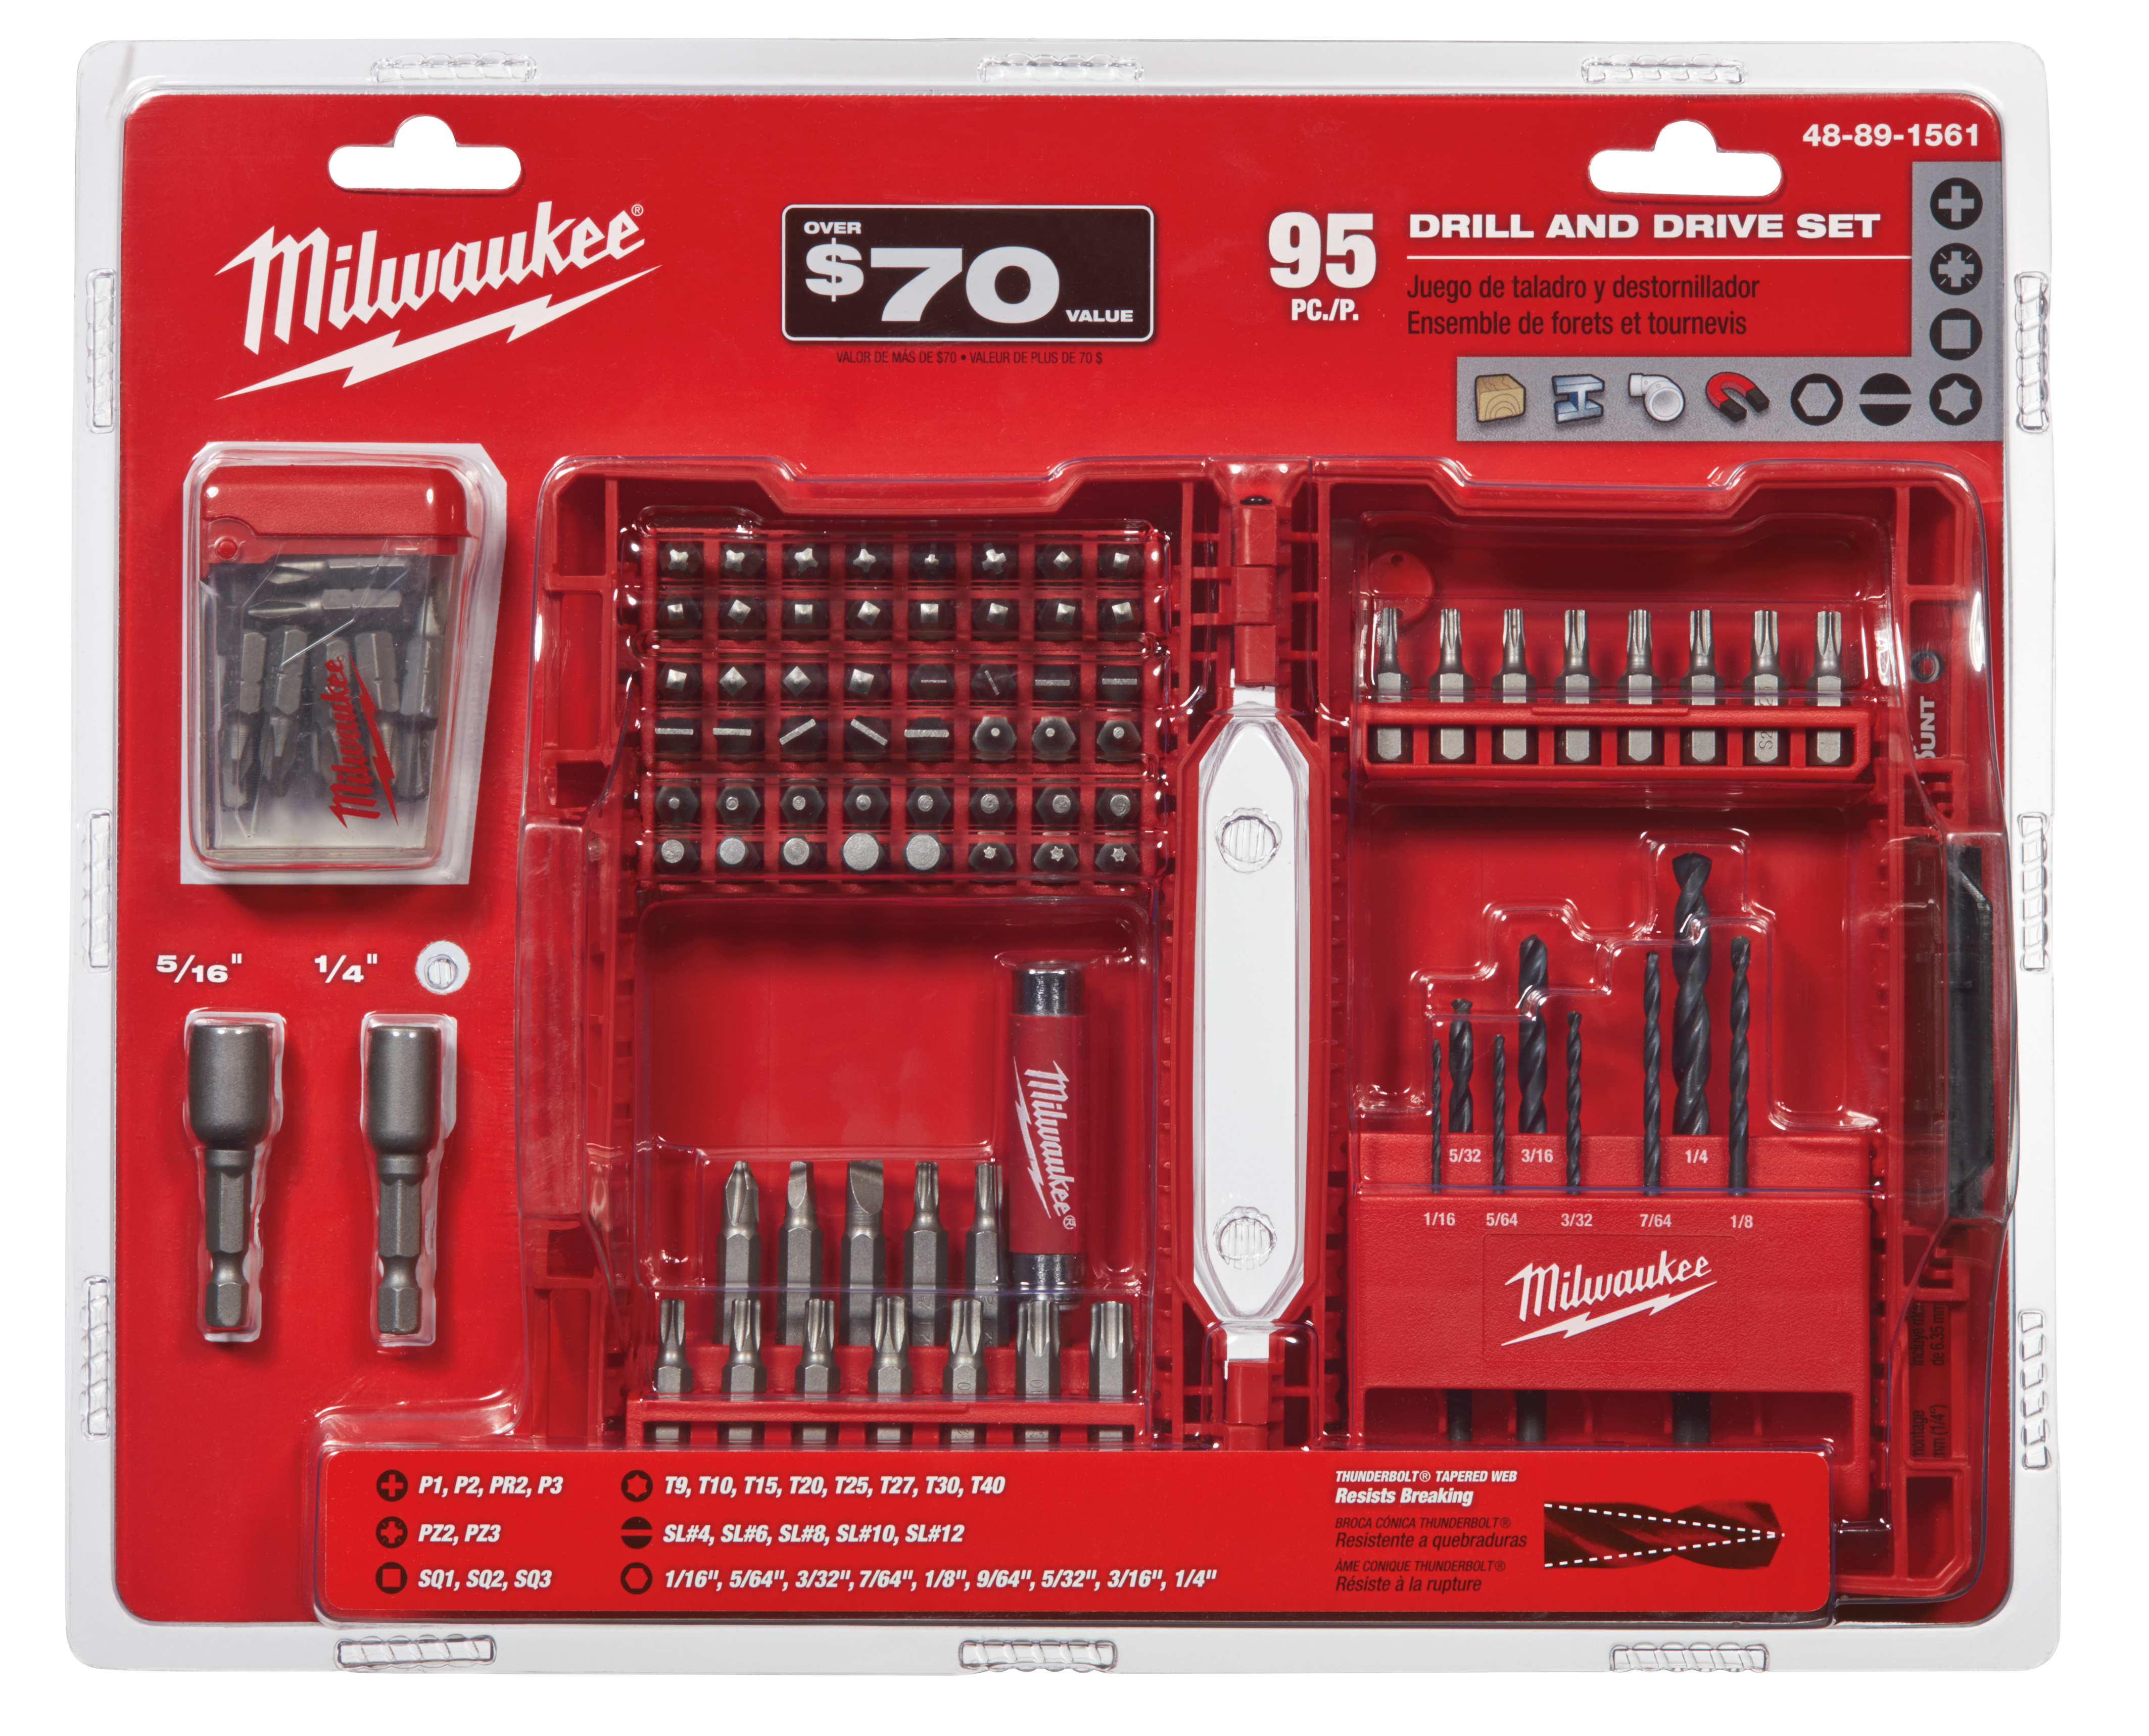 Milwaukee® 48-89-1561 Drill and Drive Bit Set, Imperial, 95 Pieces, S2 Tool Steel, Black Oxide